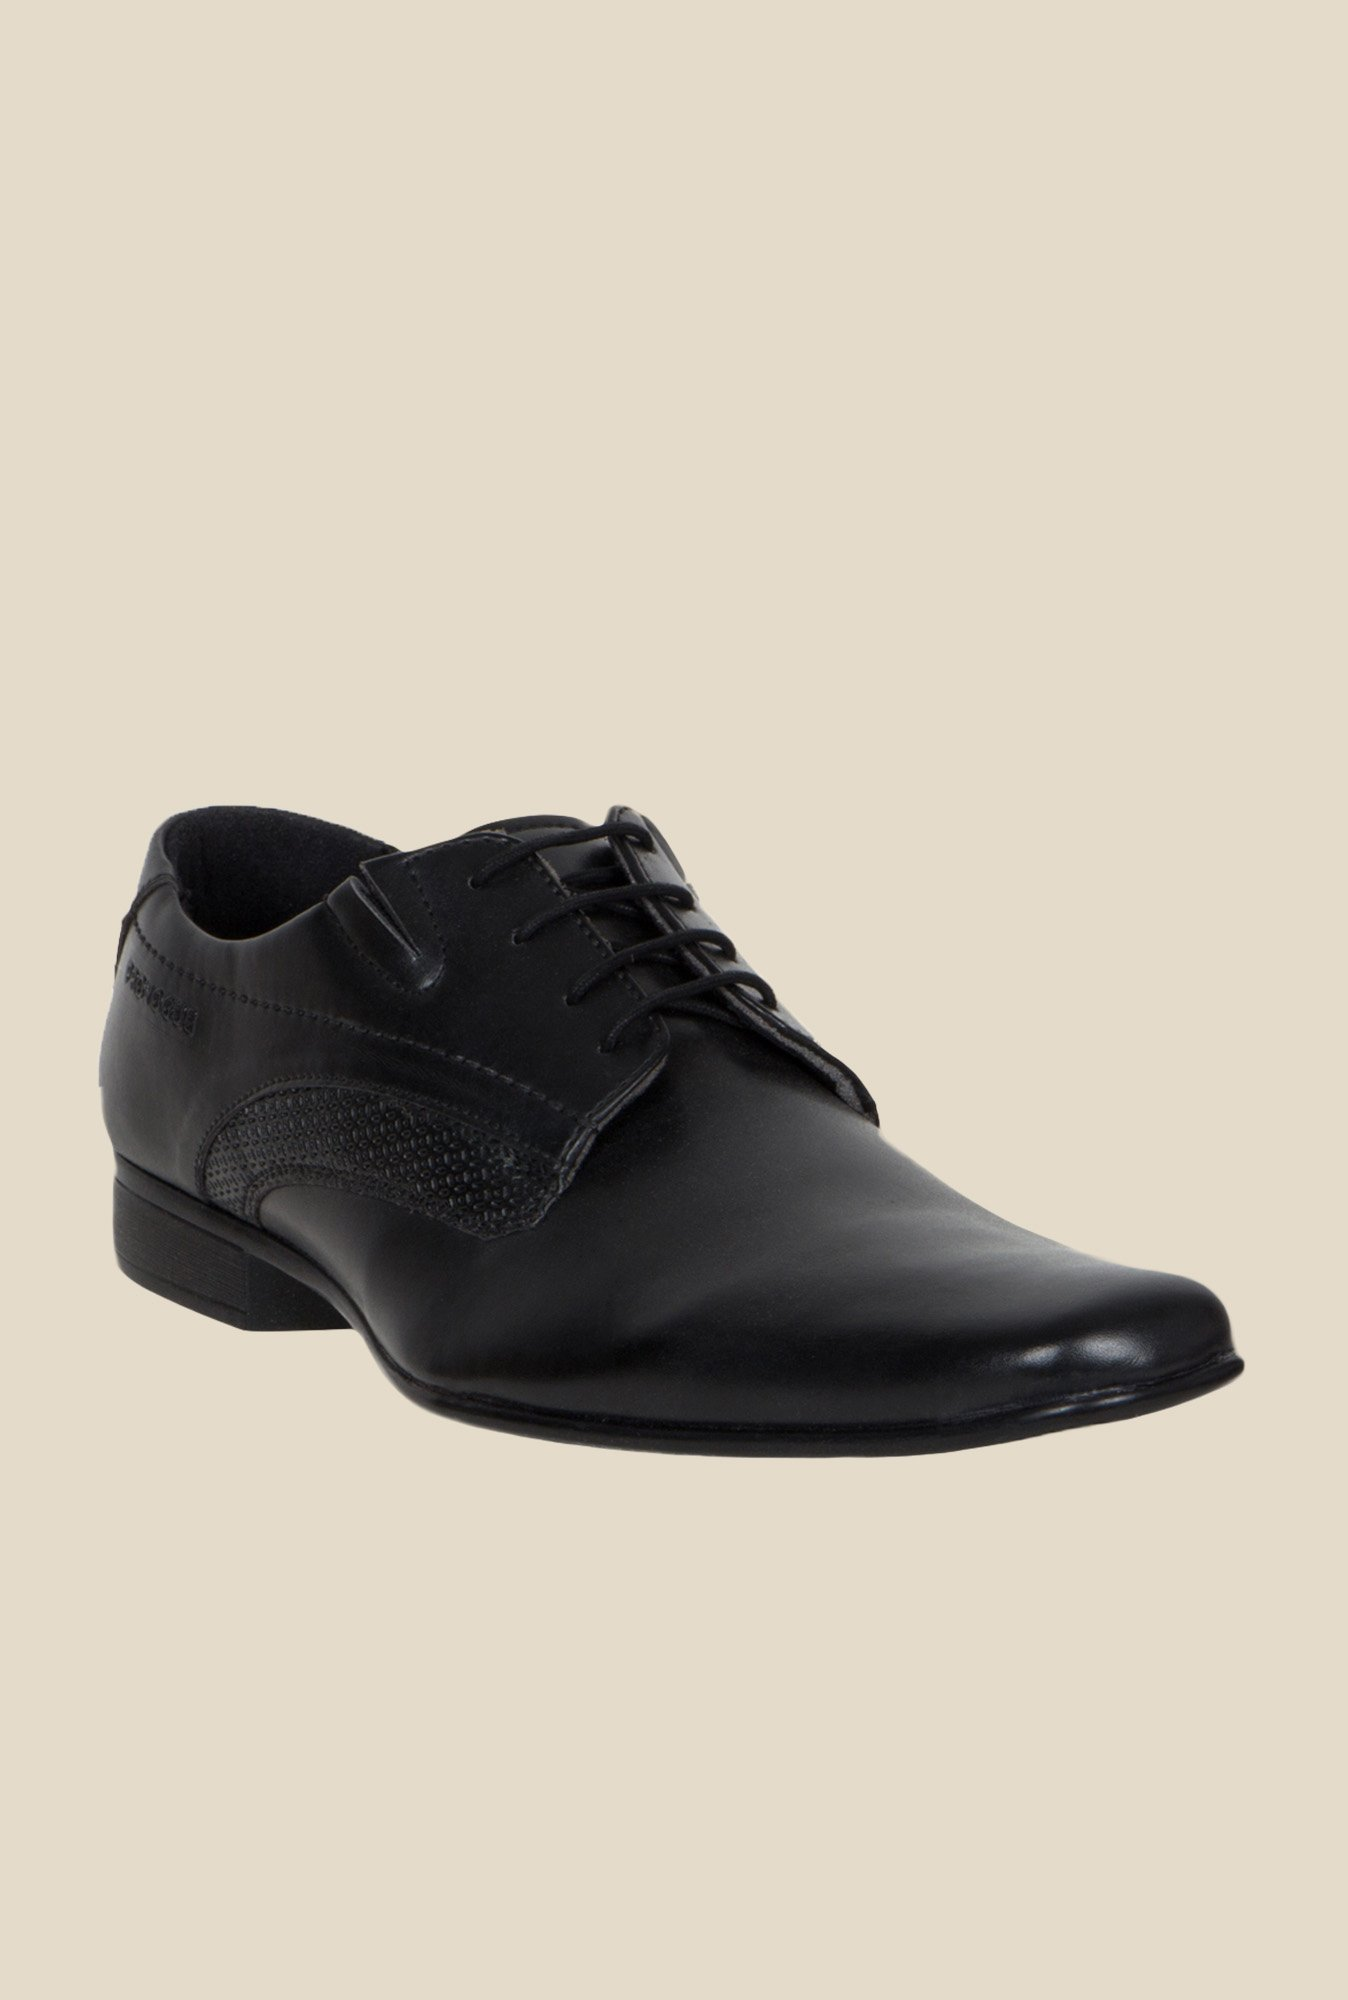 Provogue Black Derby Shoes